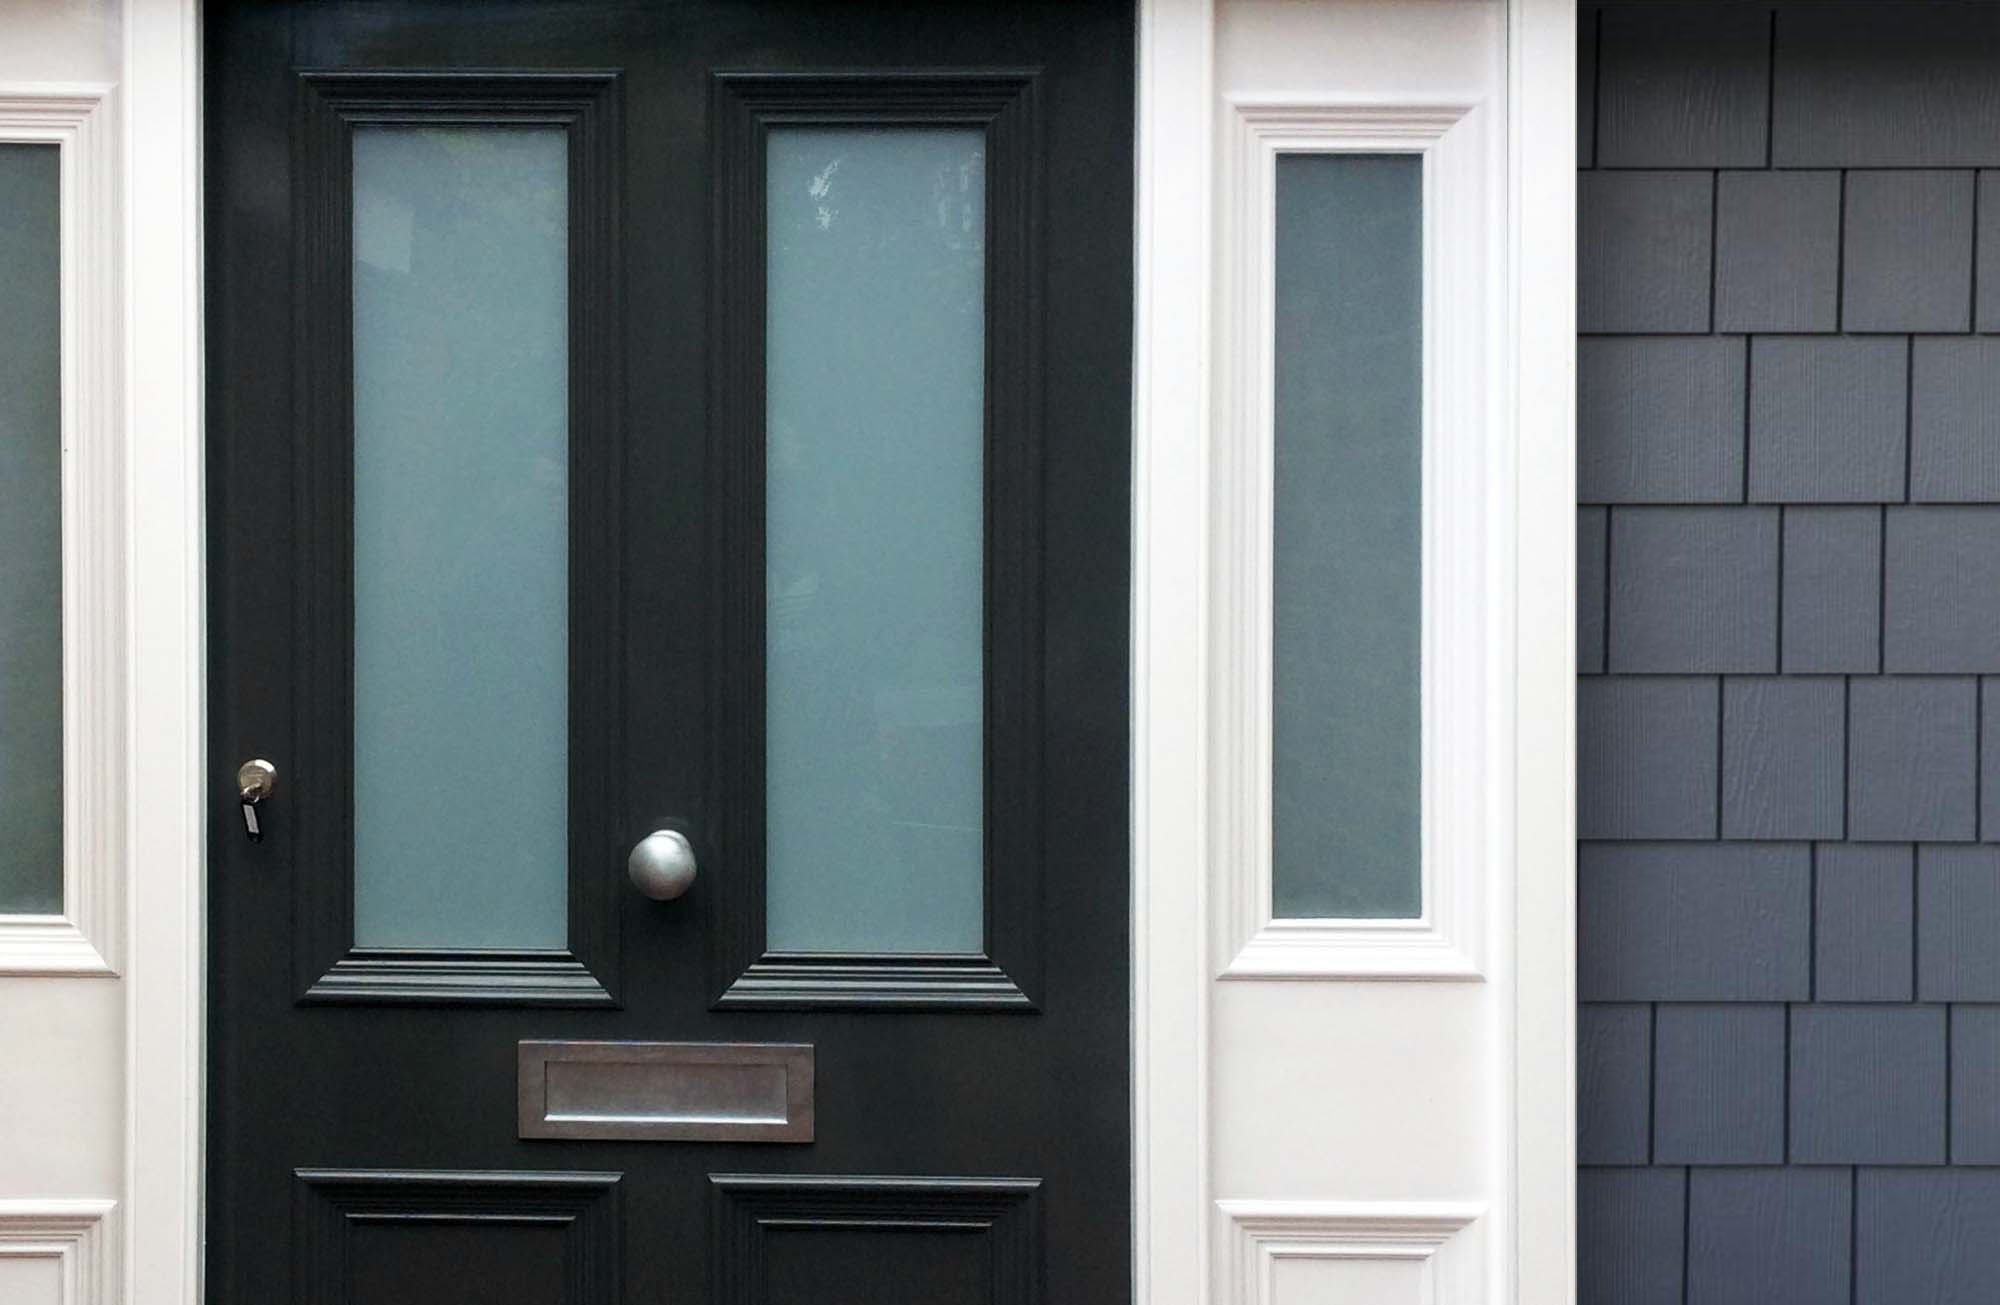 English style black front door with medium blue cedar shake siding. White trim with glass side lights.